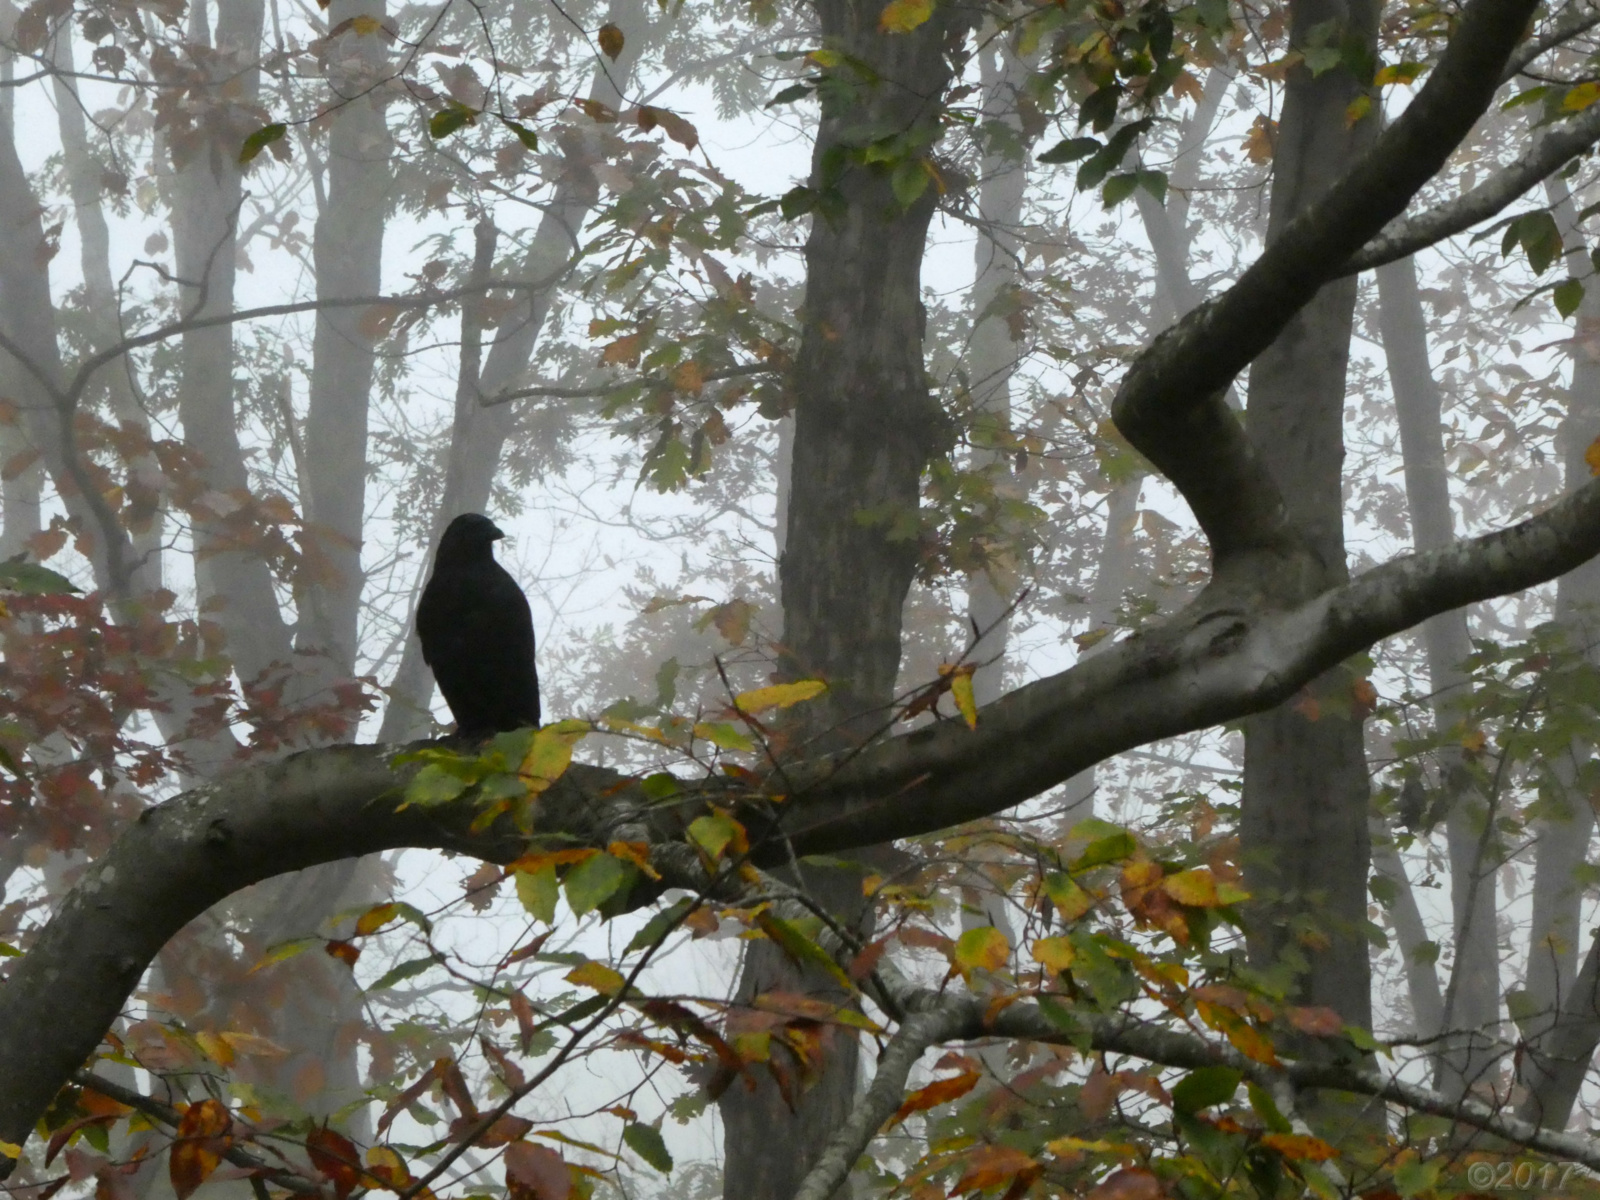 November 8, 2018 - Crow in foggy Bent Tree